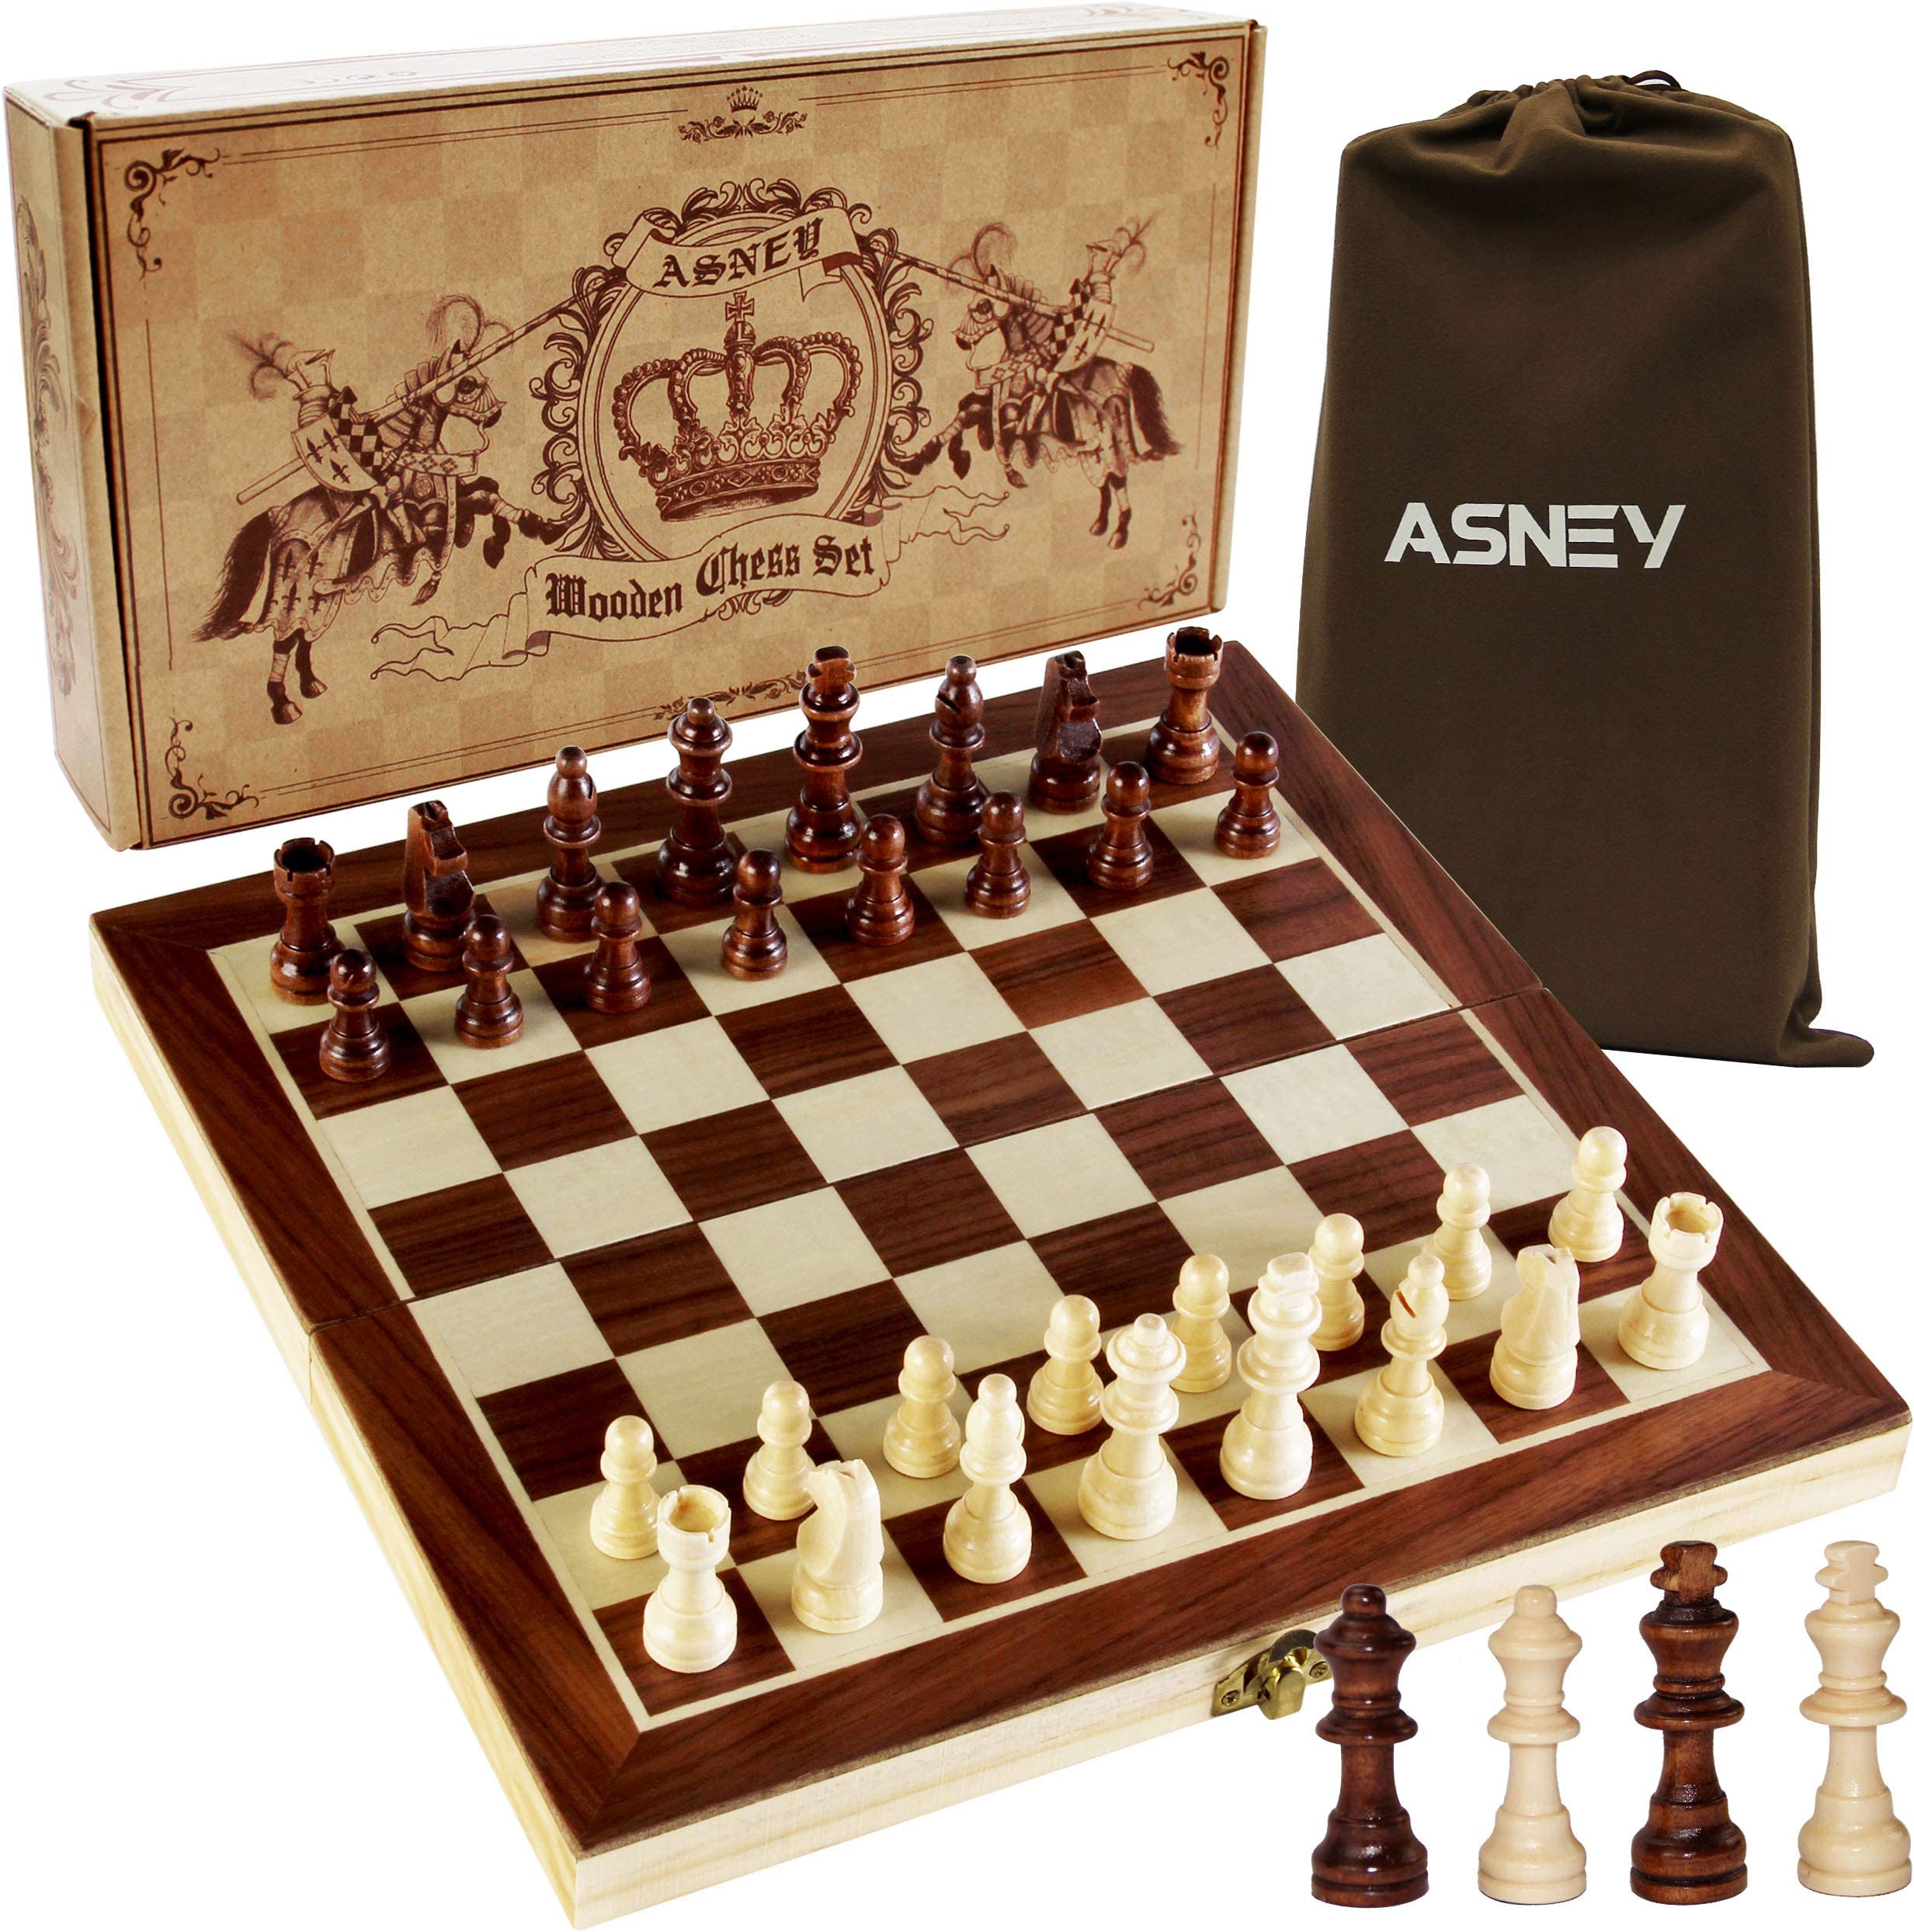 """ASNEY Upgraded Magnetic Chess Set, 12"""" x 12"""" Folding Wooden Chess Set with Magnetic Crafted Chess Pieces, Chess Game Board Set with Storage Slots, Includes Extra Kings, Queens and Carry Bag"""